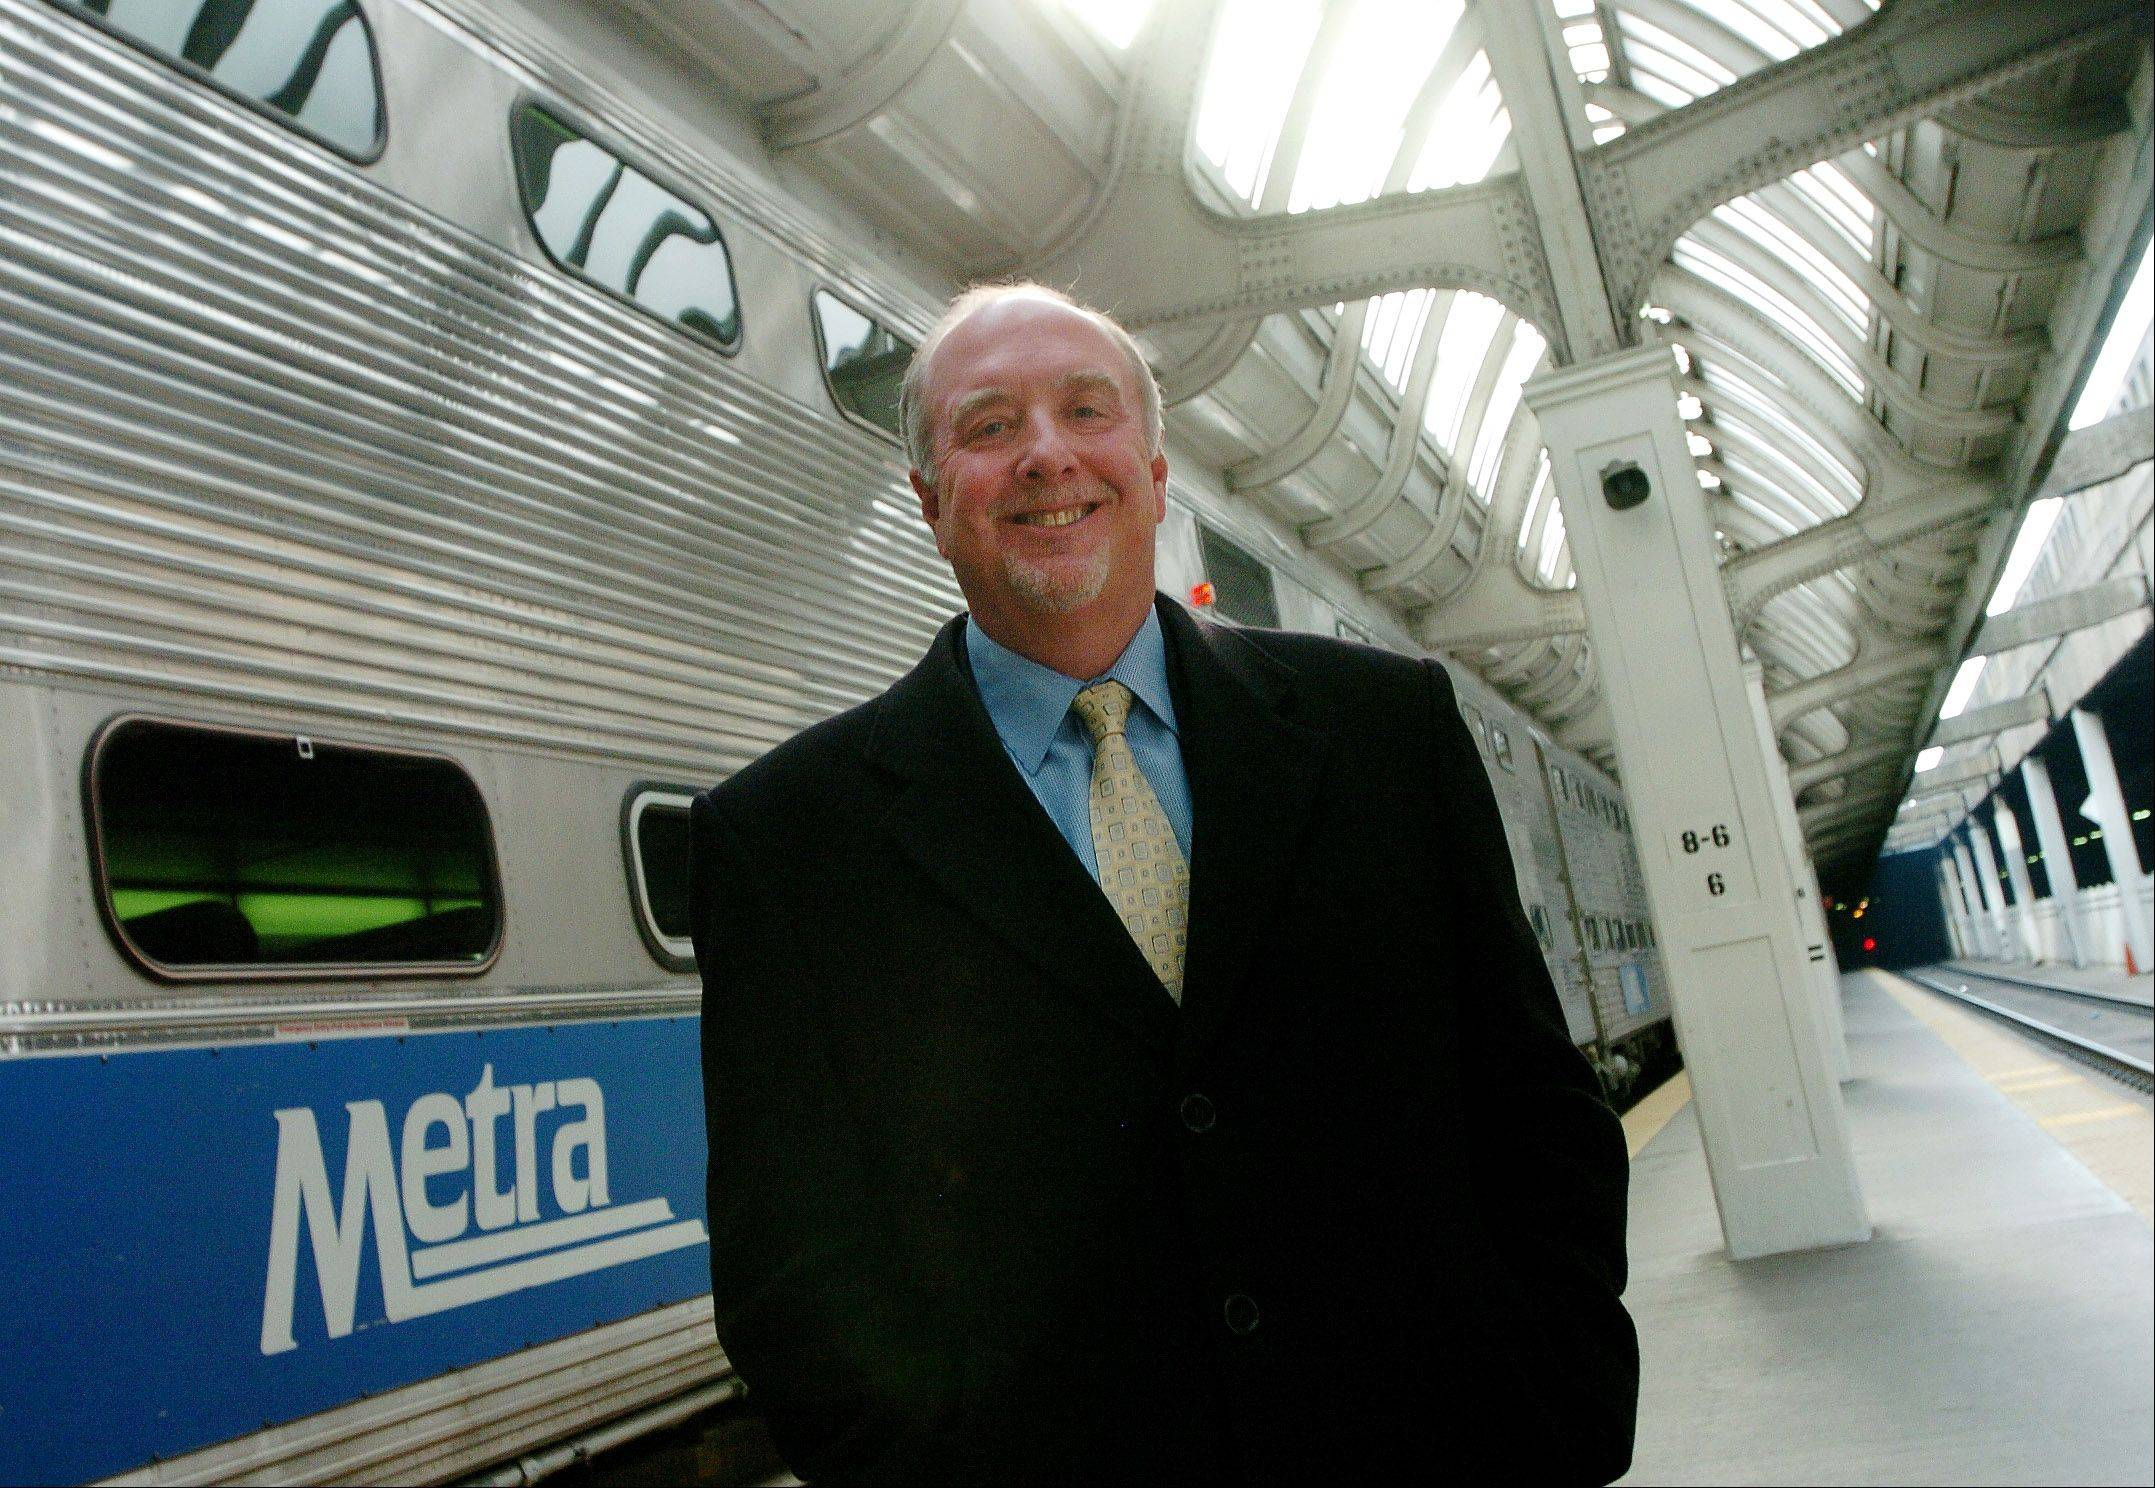 New Metra Chairman Brad O'Halloran says the allocation of funds within t